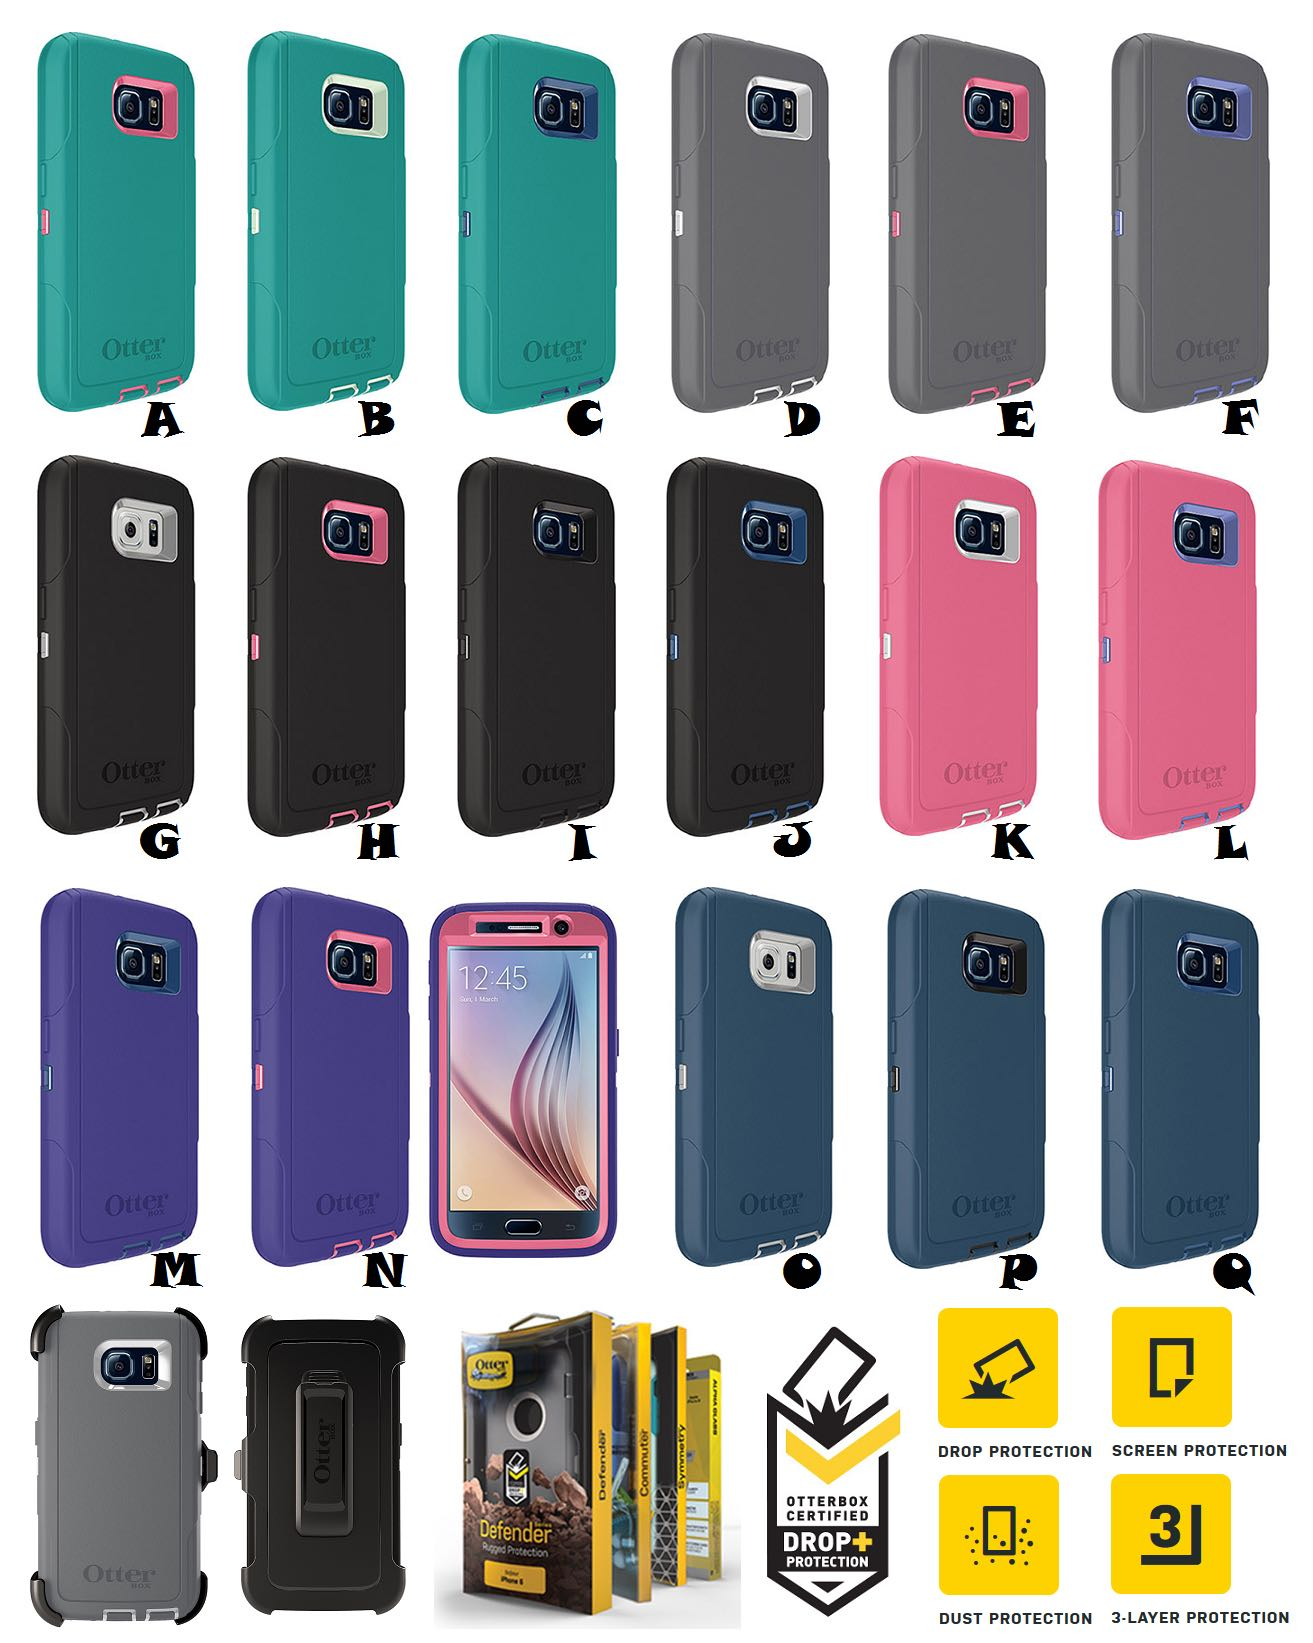 sneakers for cheap b4a66 d4bcf Samsung Galaxy S7 Edge OTTERBOX DEFENDER SERIES Case Cover